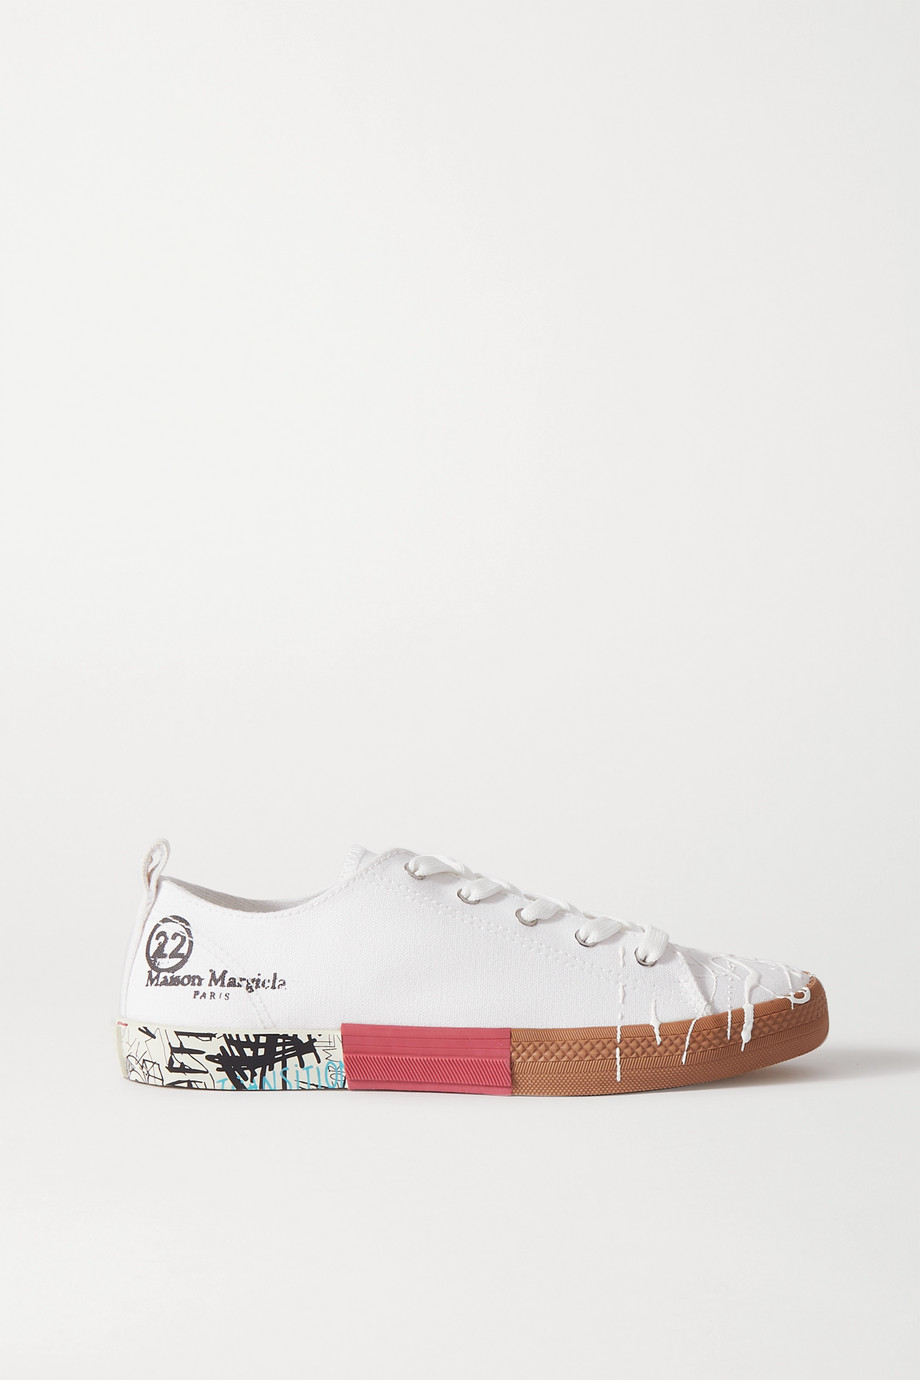 Maison Margiela Distressed printed canvas sneakers